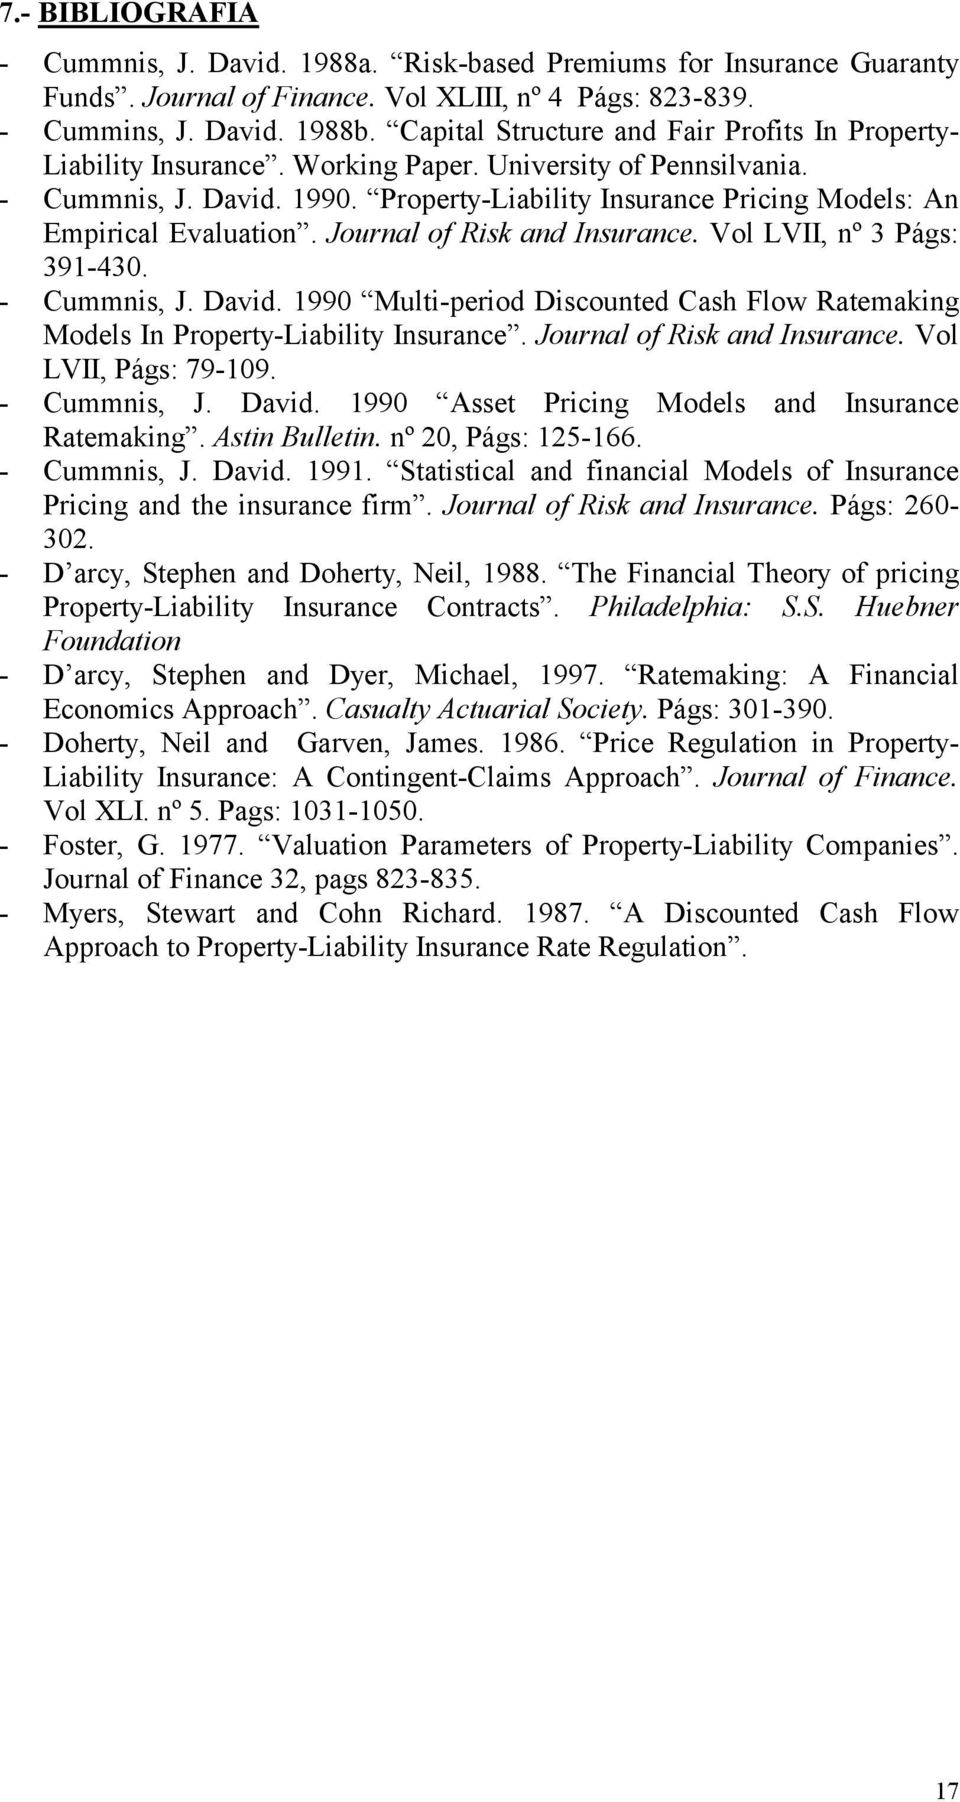 Property-Liability Insurance Pricing Models: An Empirical Evaluation. Journal of Risk and Insurance. Vol LVII, nº 3 Págs: 391-430. - Cummnis, J. David.